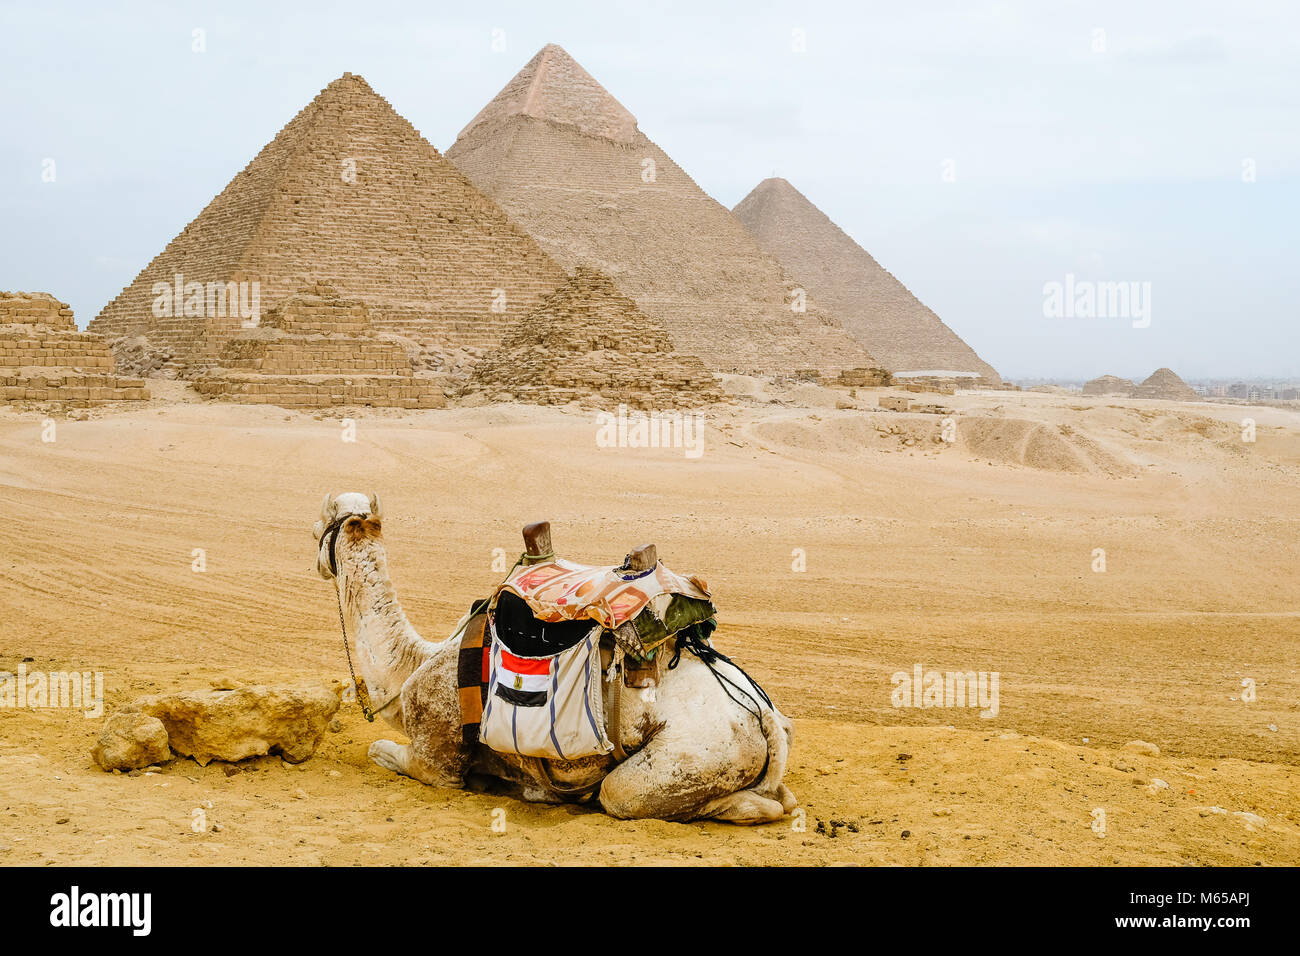 Camel assis devant les pyramides au Caire Photo Stock